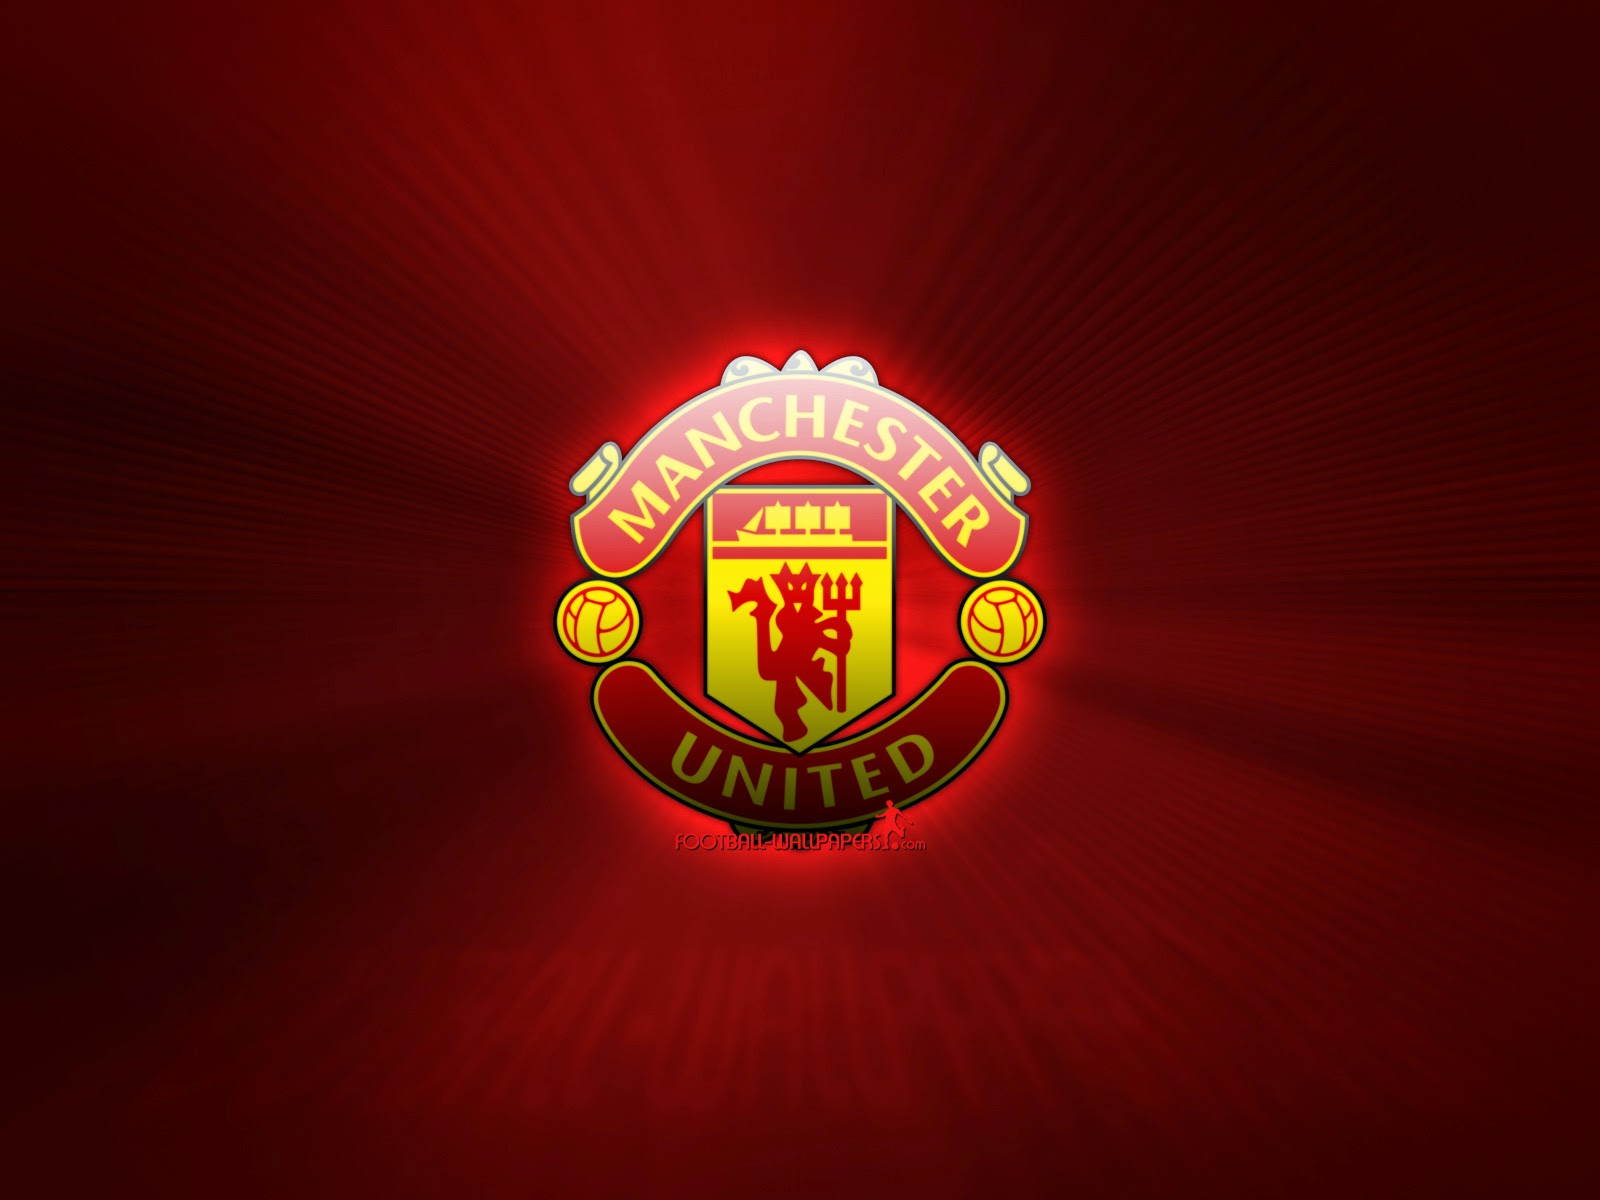 download manchester united wallpapers hd wallpaper 1600a—1200